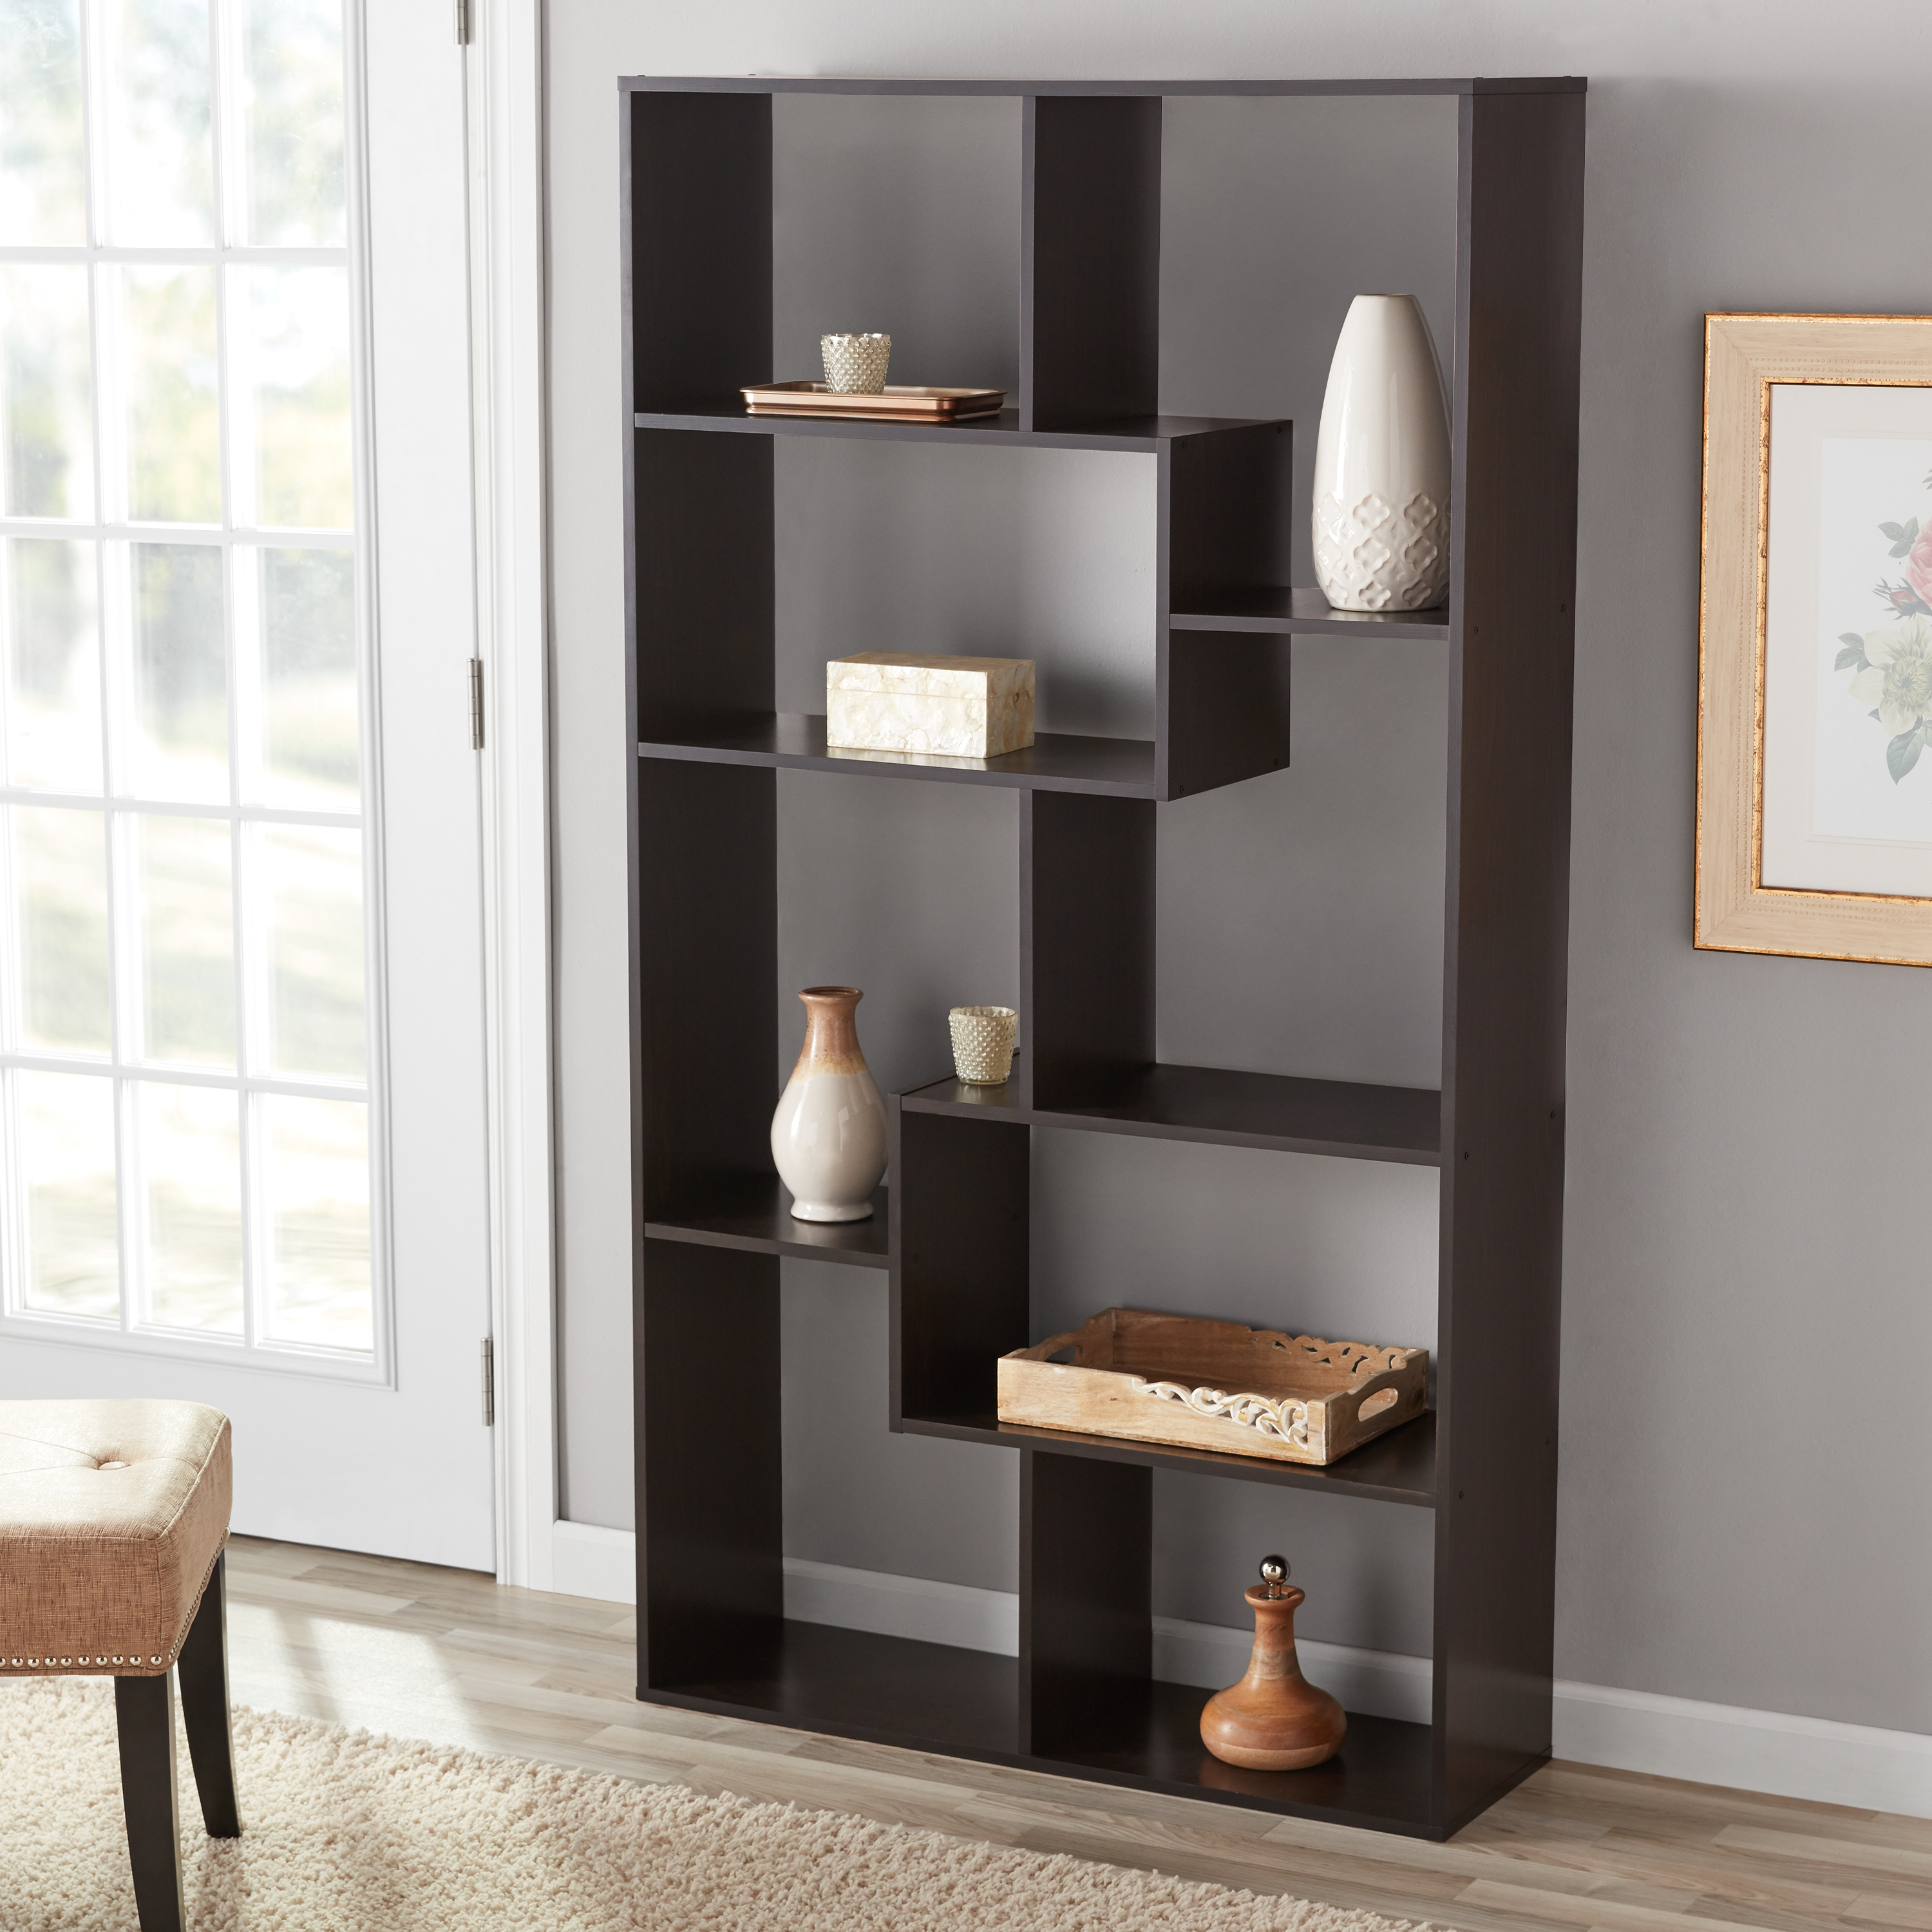 Mainstays 8-Cube Bookcase, White or Espresso